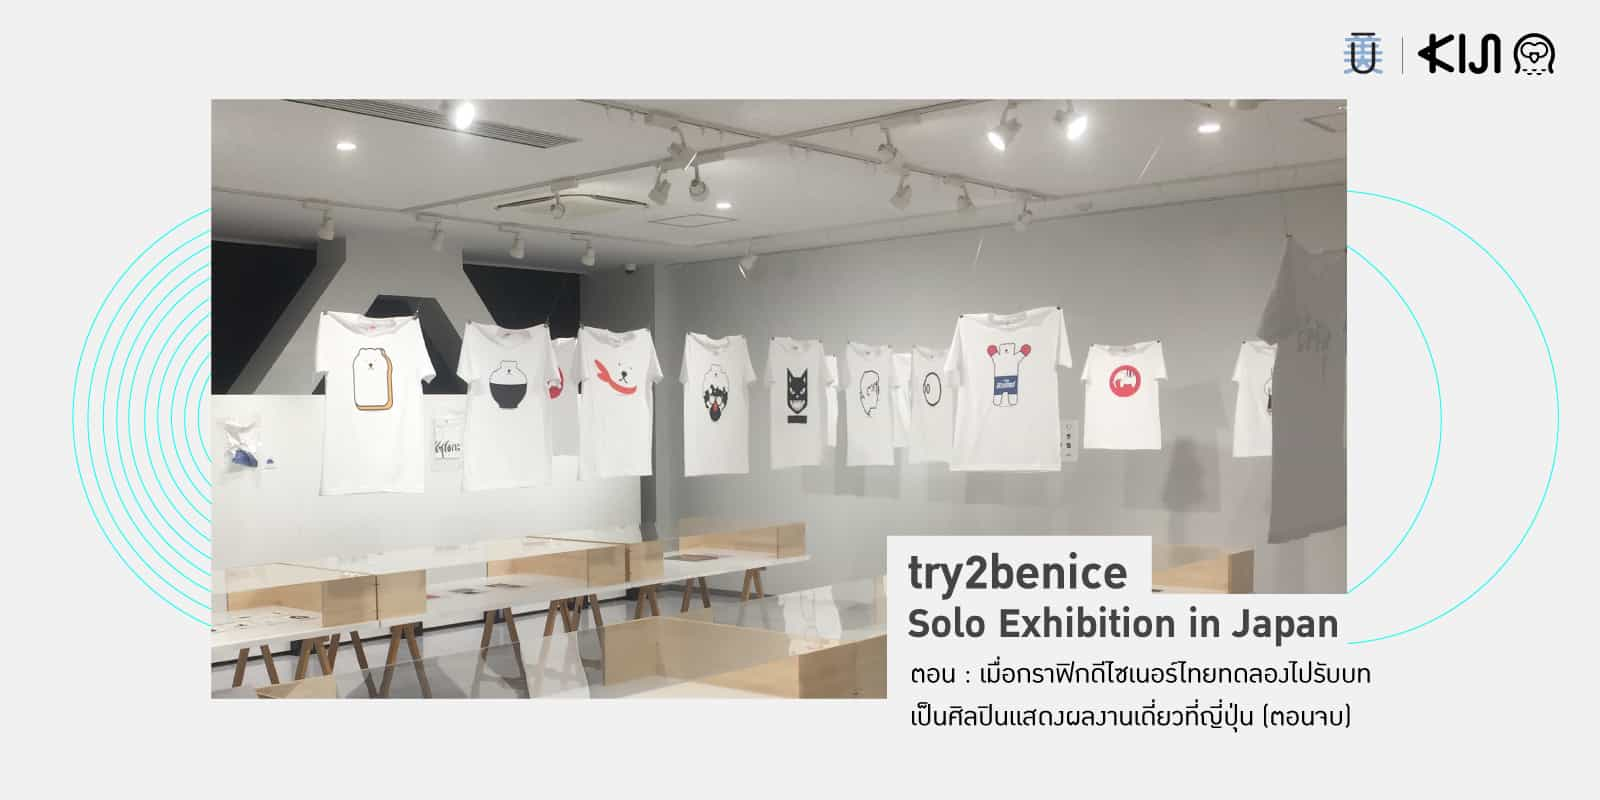 try2benice Solo Exhibition in Japan